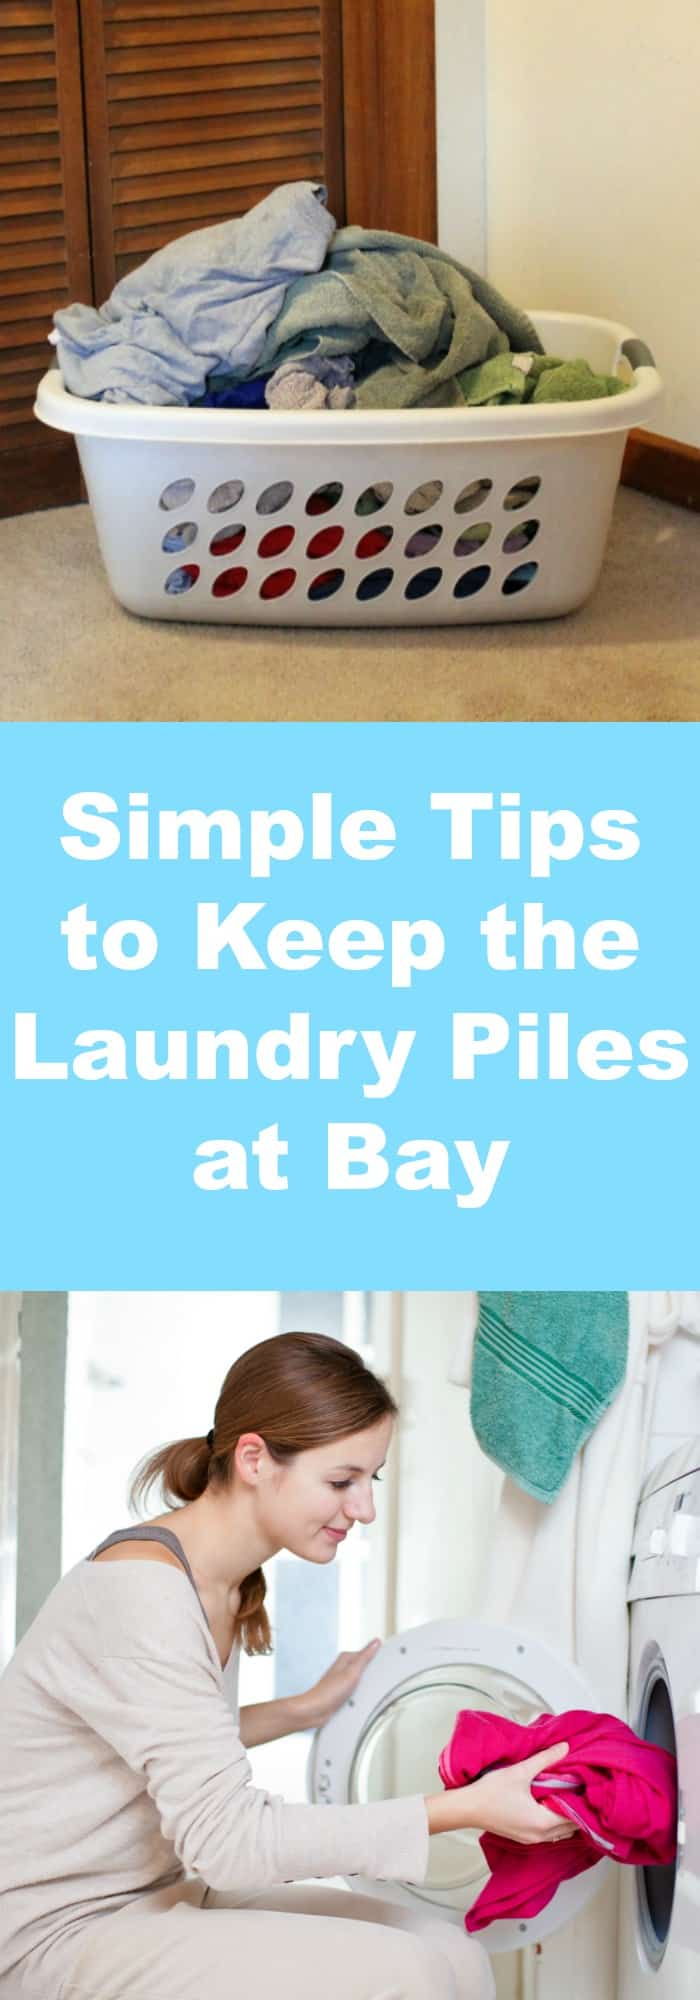 Cleaning--Simple Tips to Keep the Laundry Piles at Bay--The Organized Mom